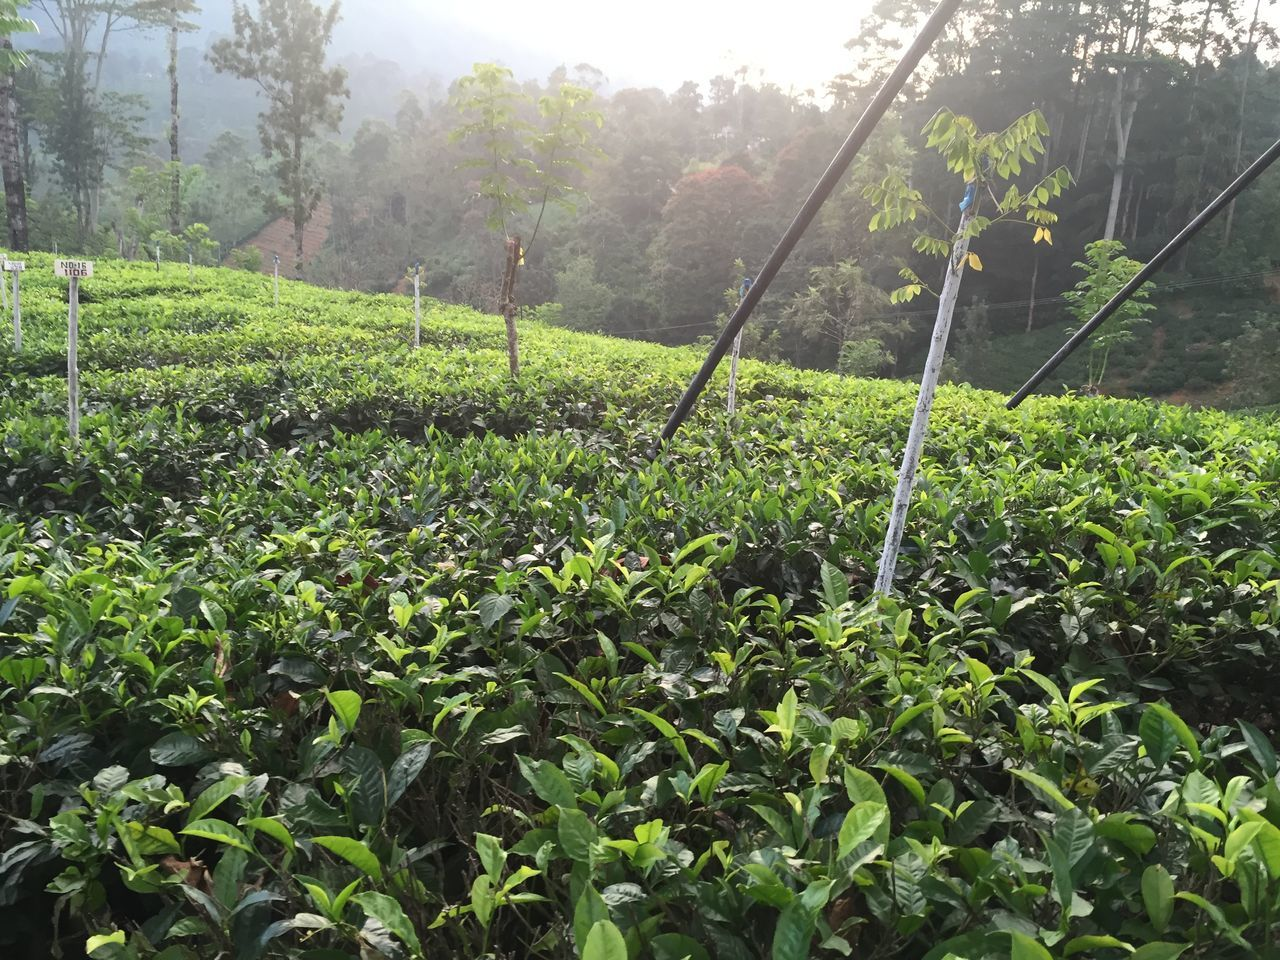 tea plantations Agriculture Beauty In Nature Day Field Freshness Green Color Growth Landscape Leaf Lush - Description Nature No People Outdoors Plant Plantation Rural Scene Scenics Tea Tea Crop Tea Plant Tea Plantations Tranquil Scene Tranquility Tree